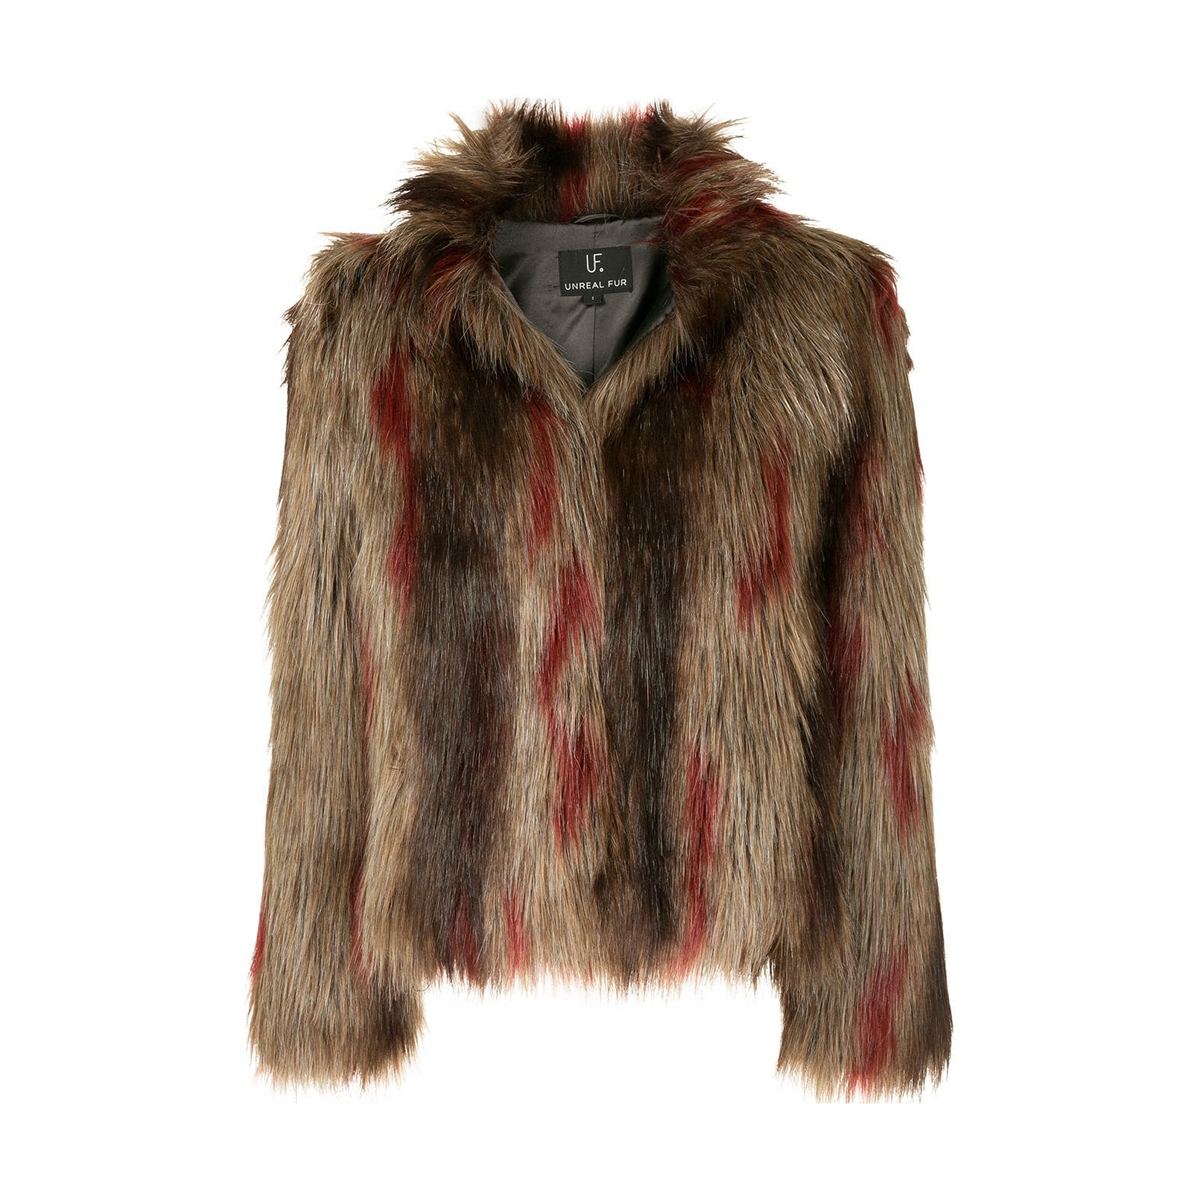 Unreal Fur Delish Jacket